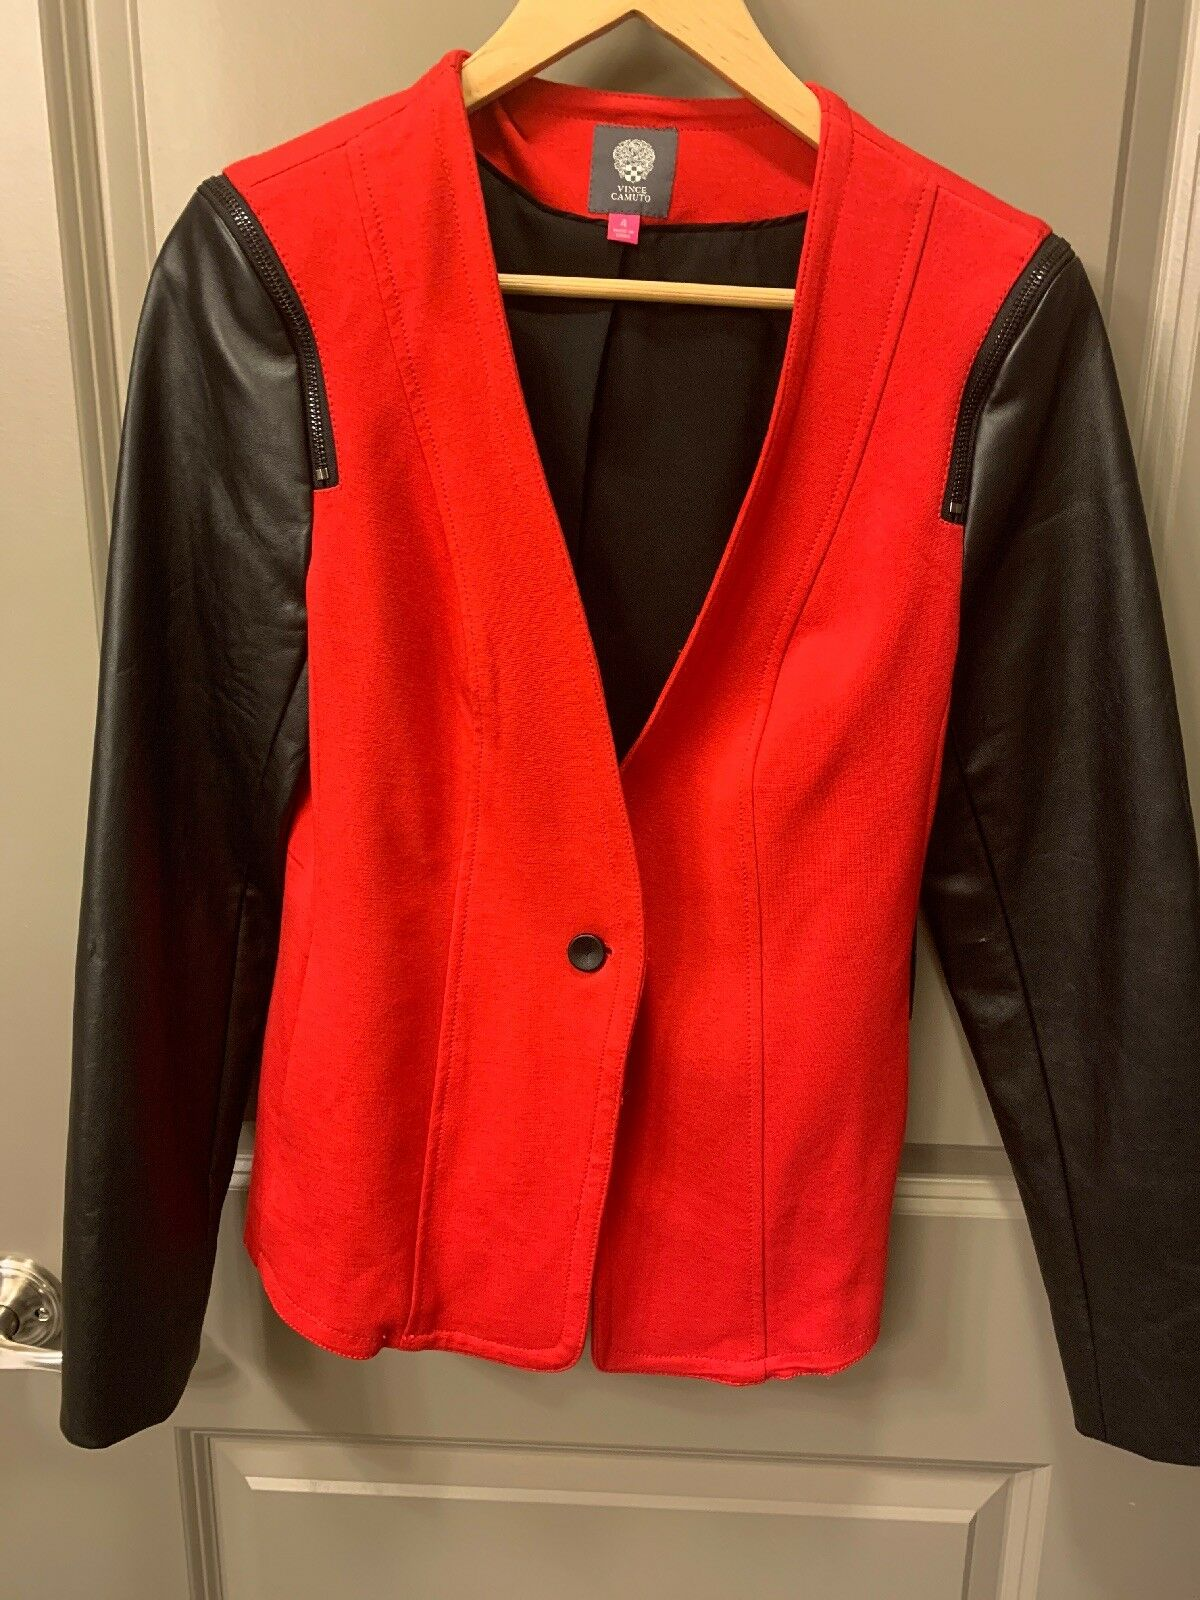 NWT Vince Camuto Red Blazer With Faux Leather Arms Size Small 4 Retails